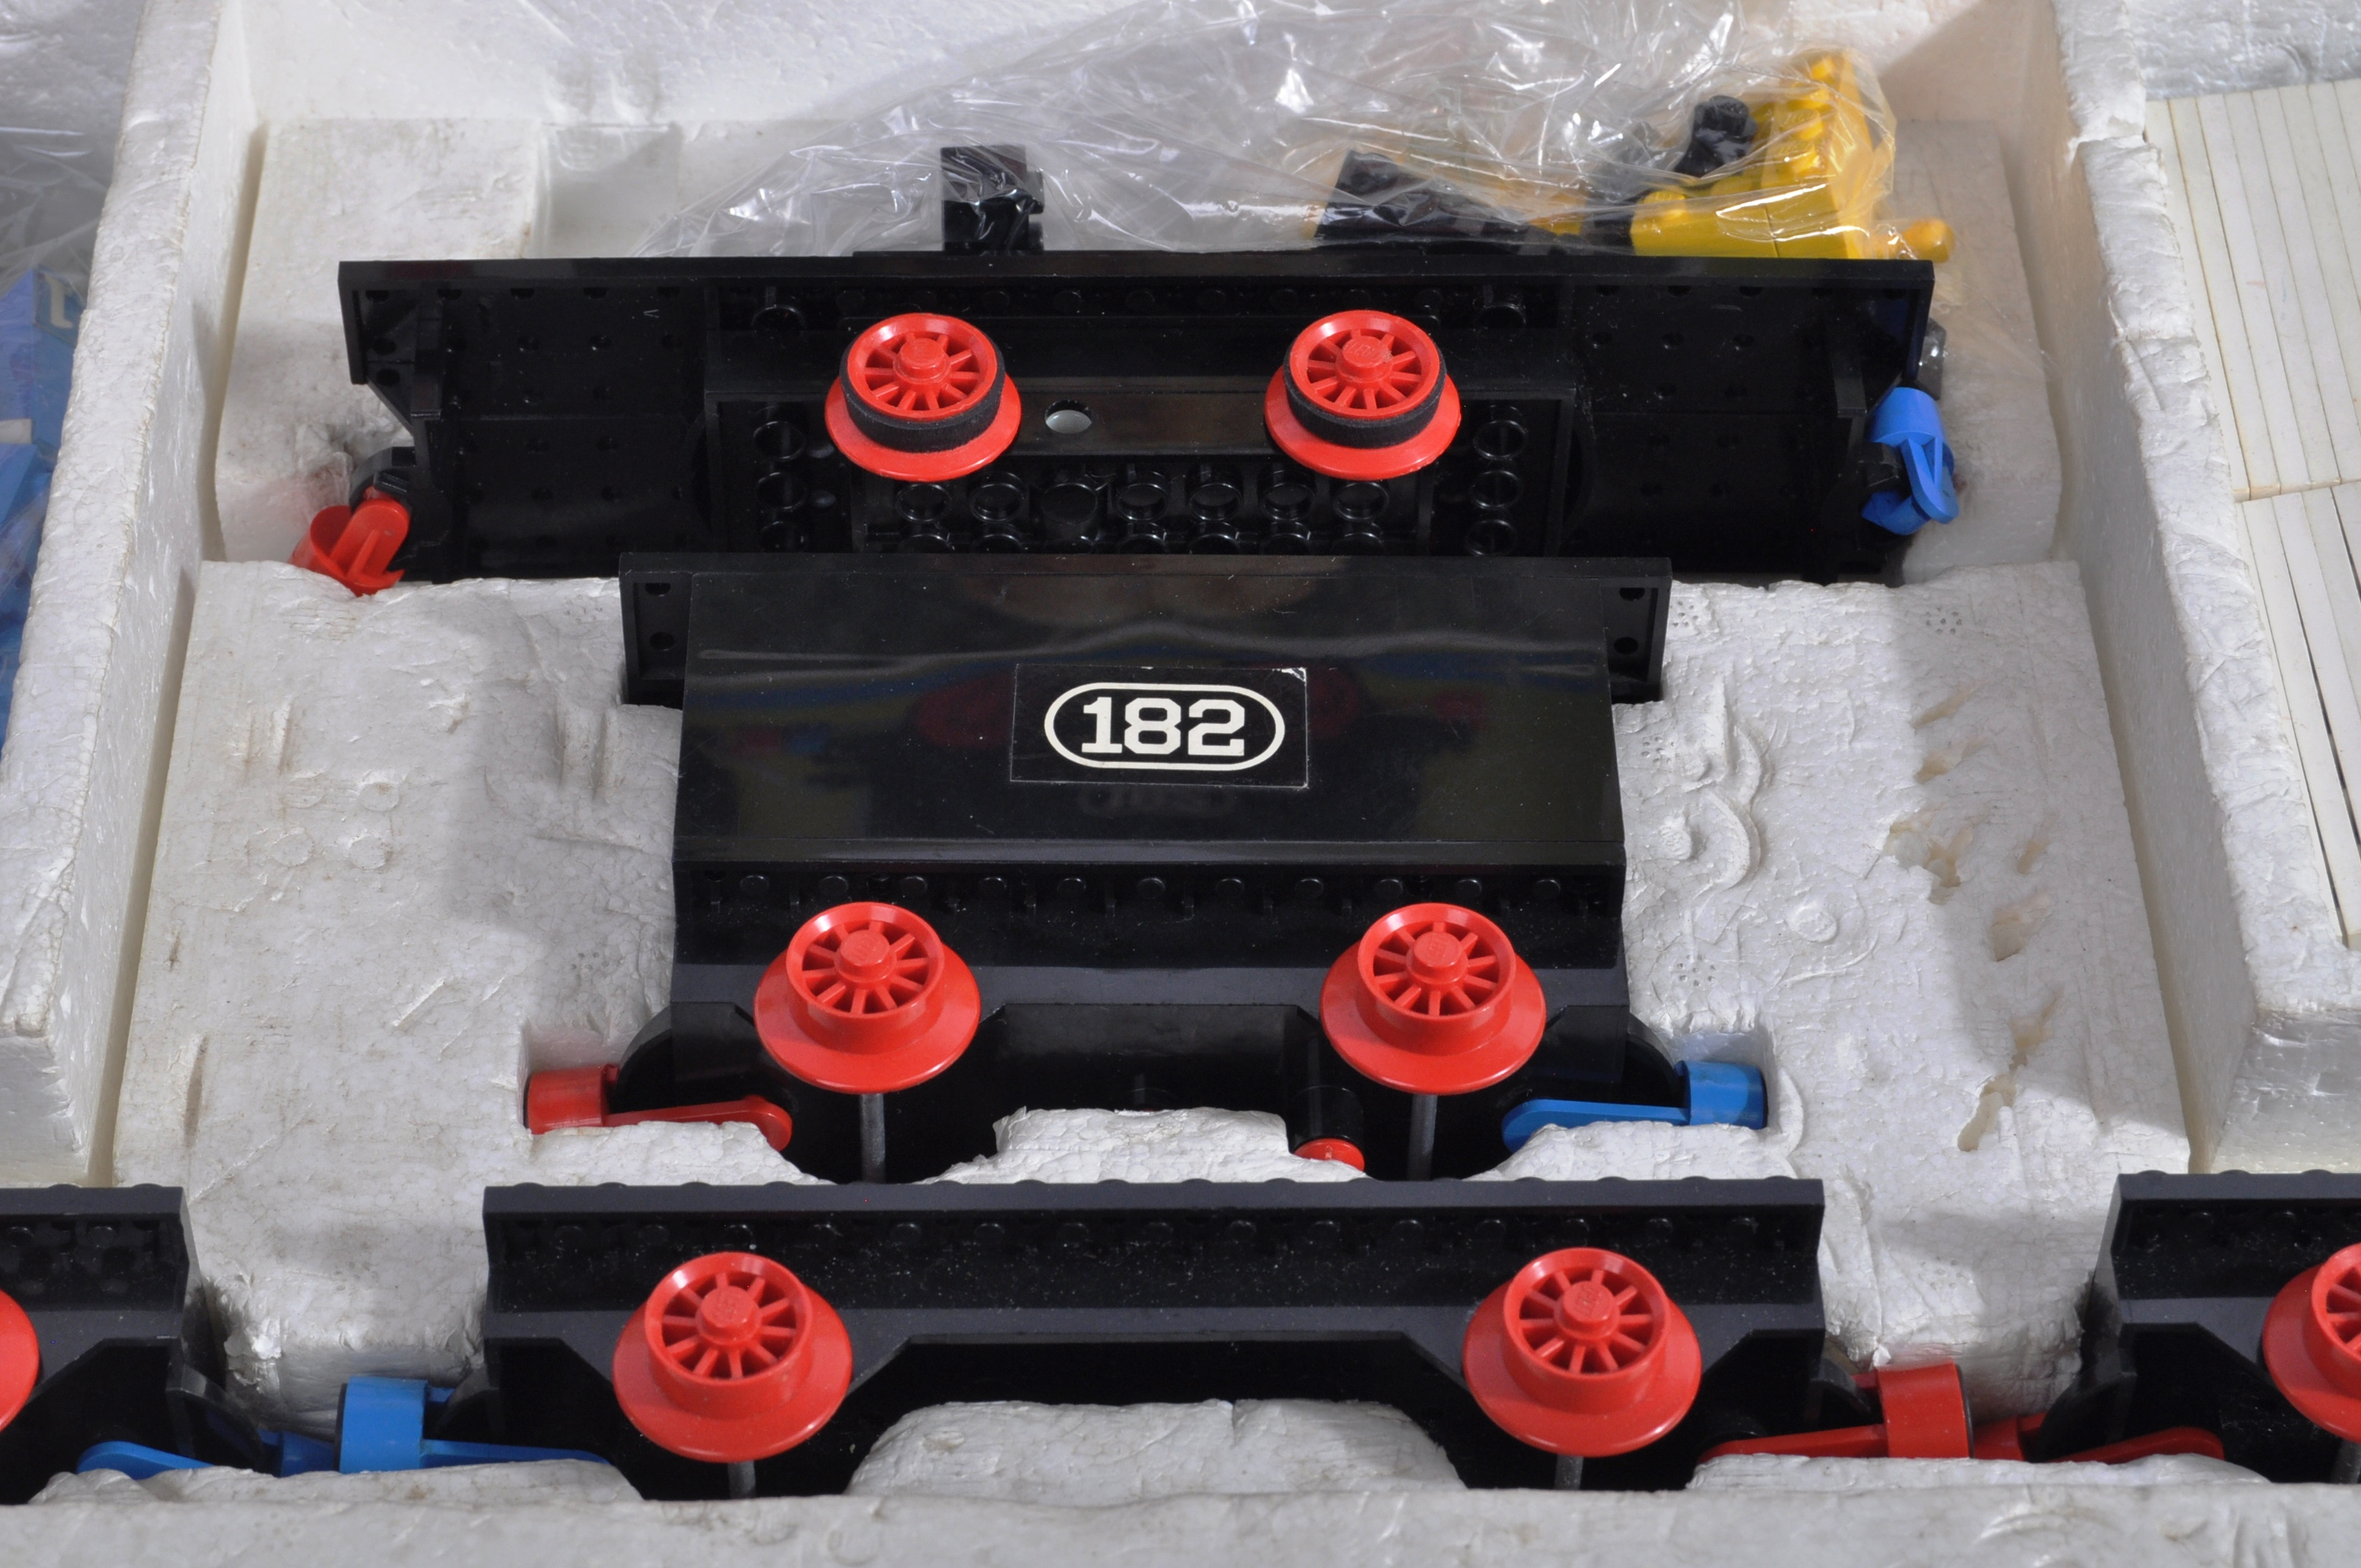 LEGO SET - 182 - TRAIN SET WITH MOTOR AND TRACK - Image 6 of 14